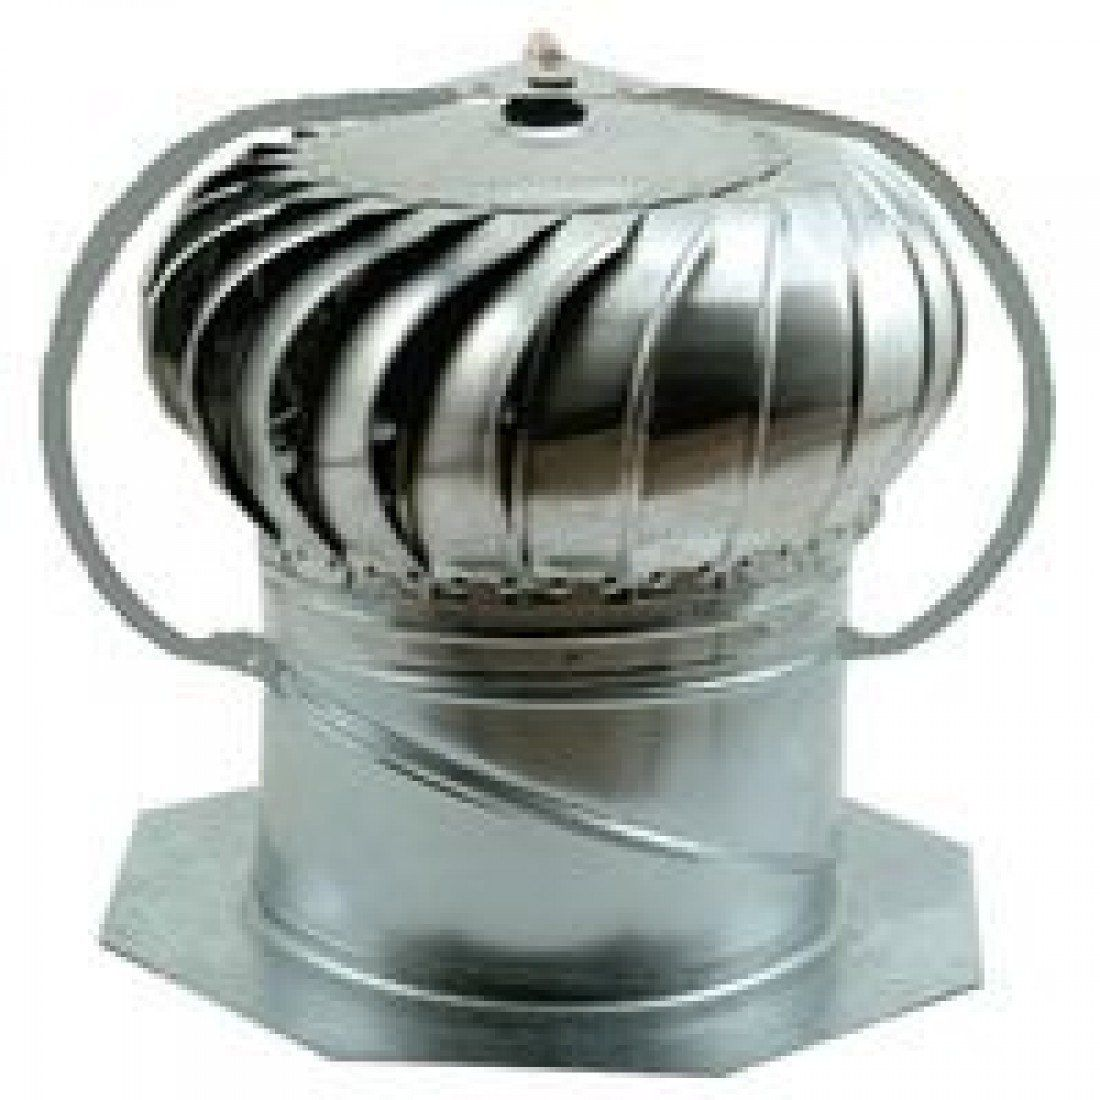 Gc12e 12 Galv Steel Turbine Base Combination Ventilator Gc12wb You Can Get More Details By Clicking On The Image Steel Turbine Plumbing Tools